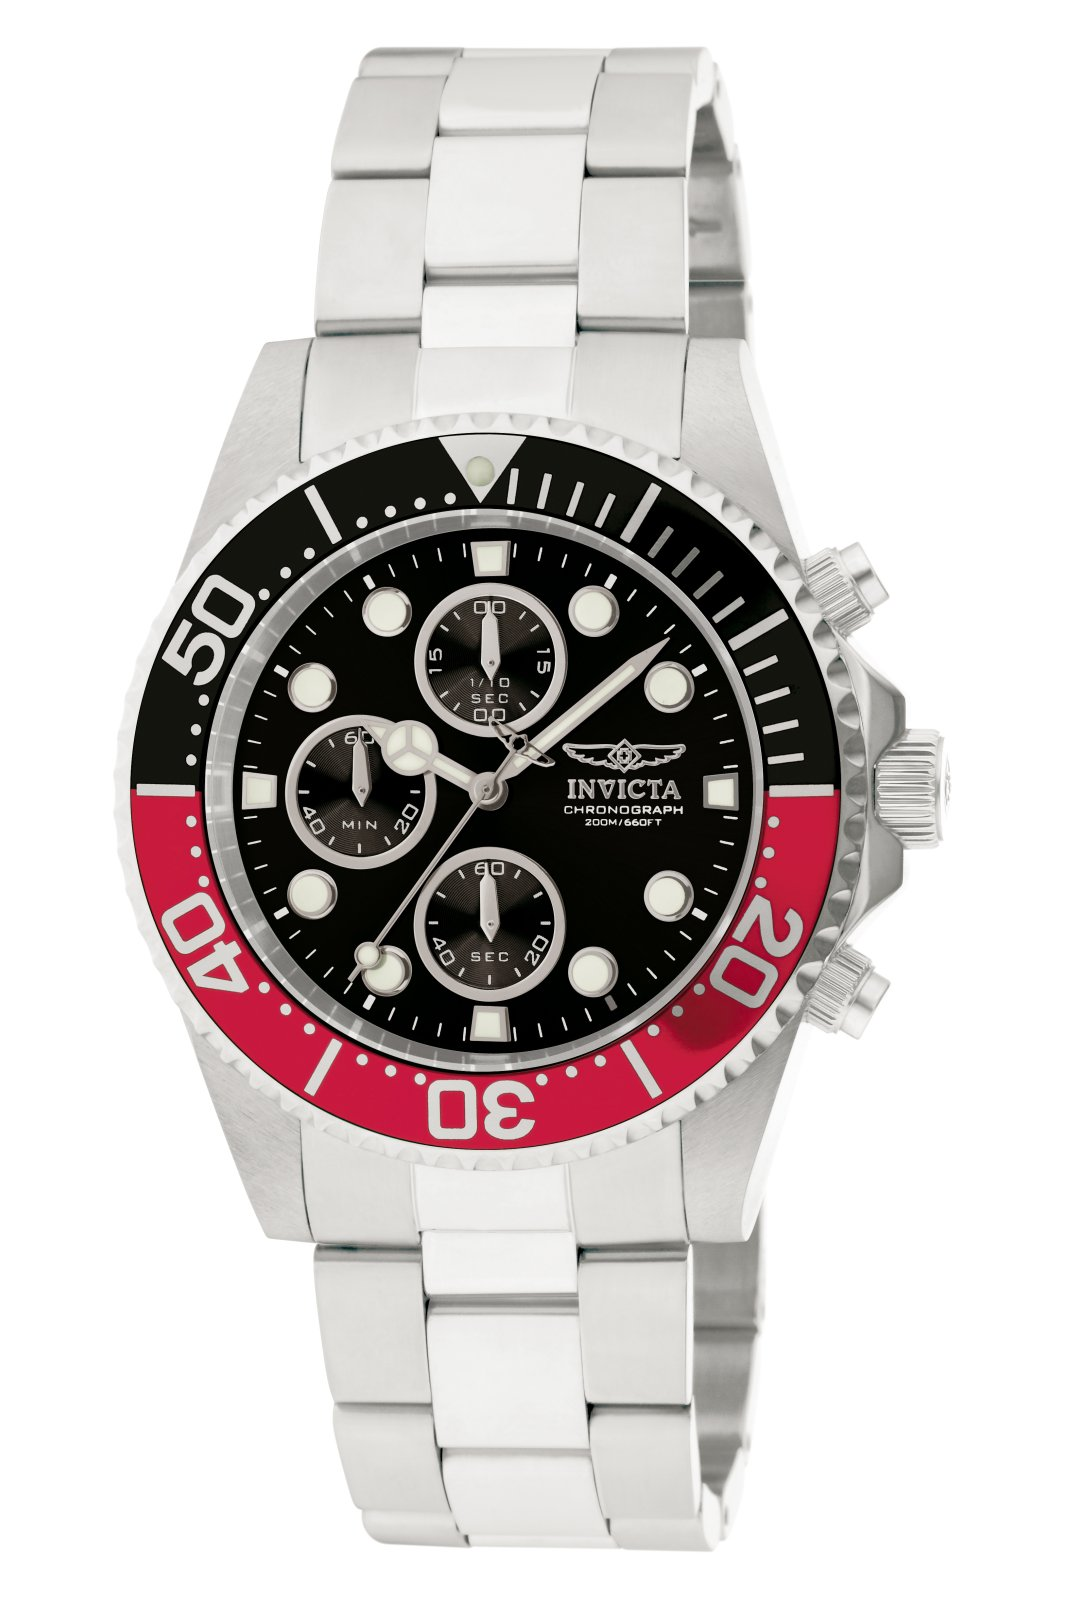 Invicta Pro Diver 1770 Men's Watch - 43mm